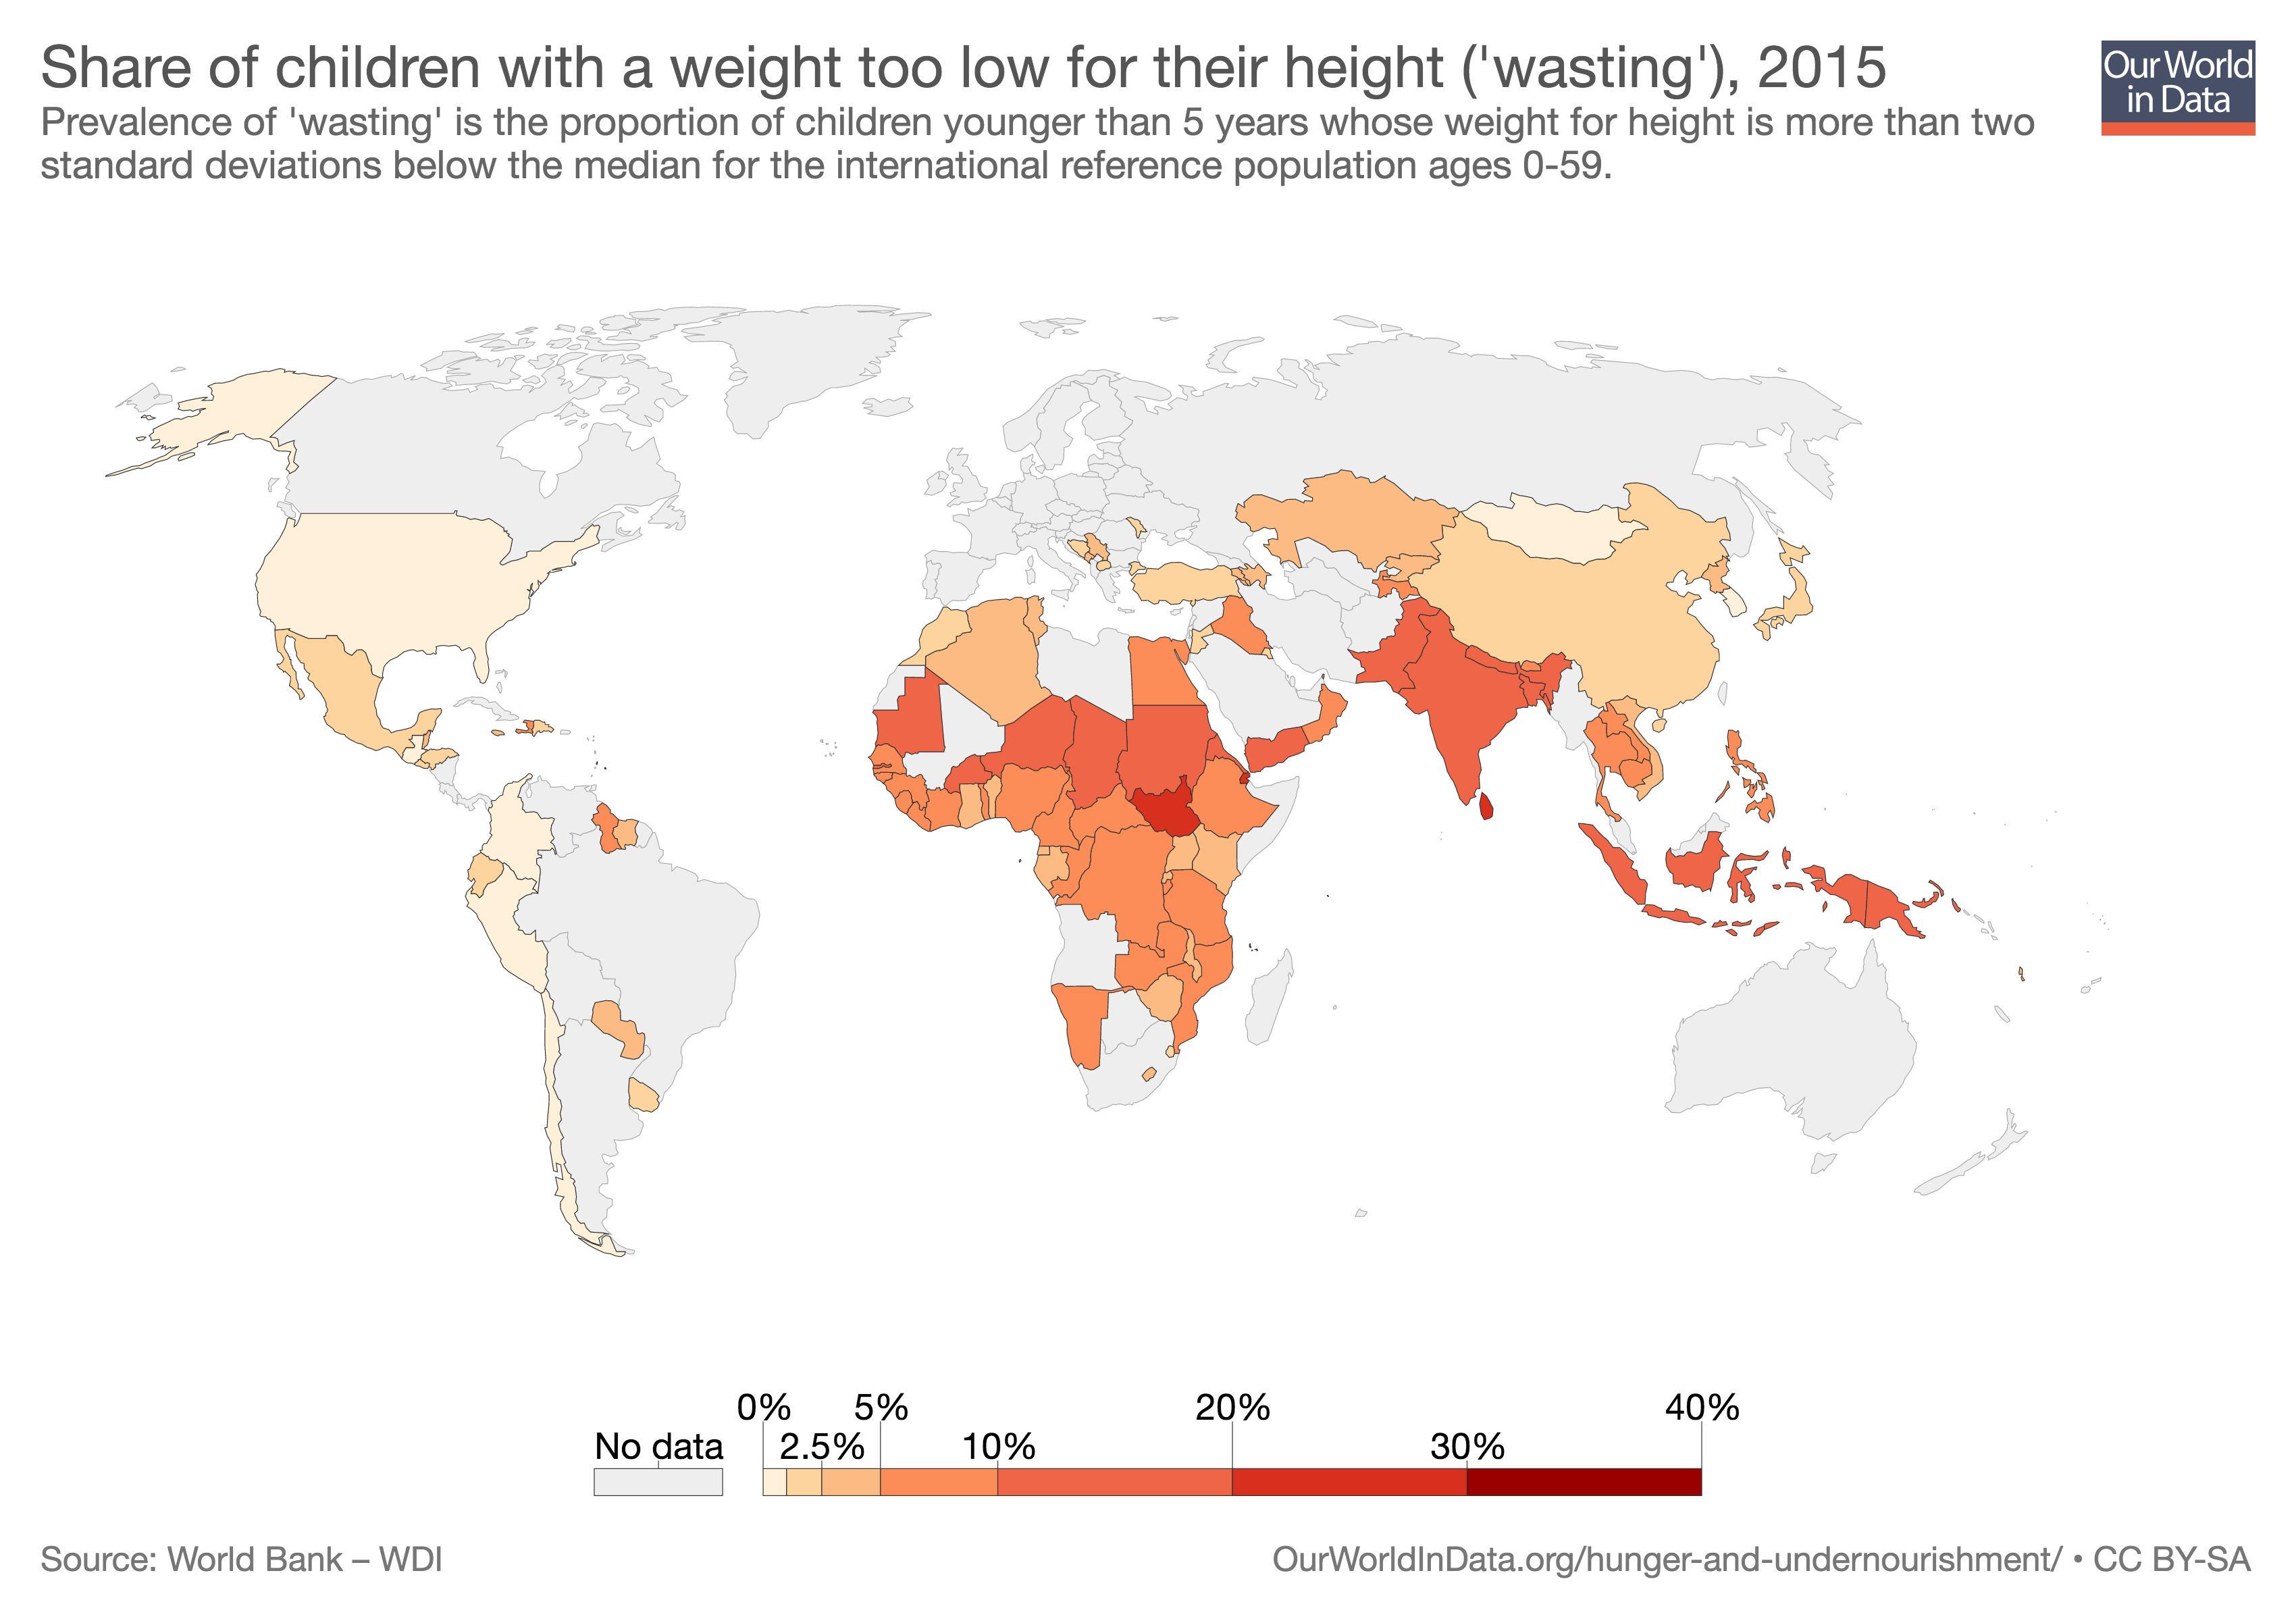 share-of-children-with-a-weight-too-low-for-their-height-wasting.png